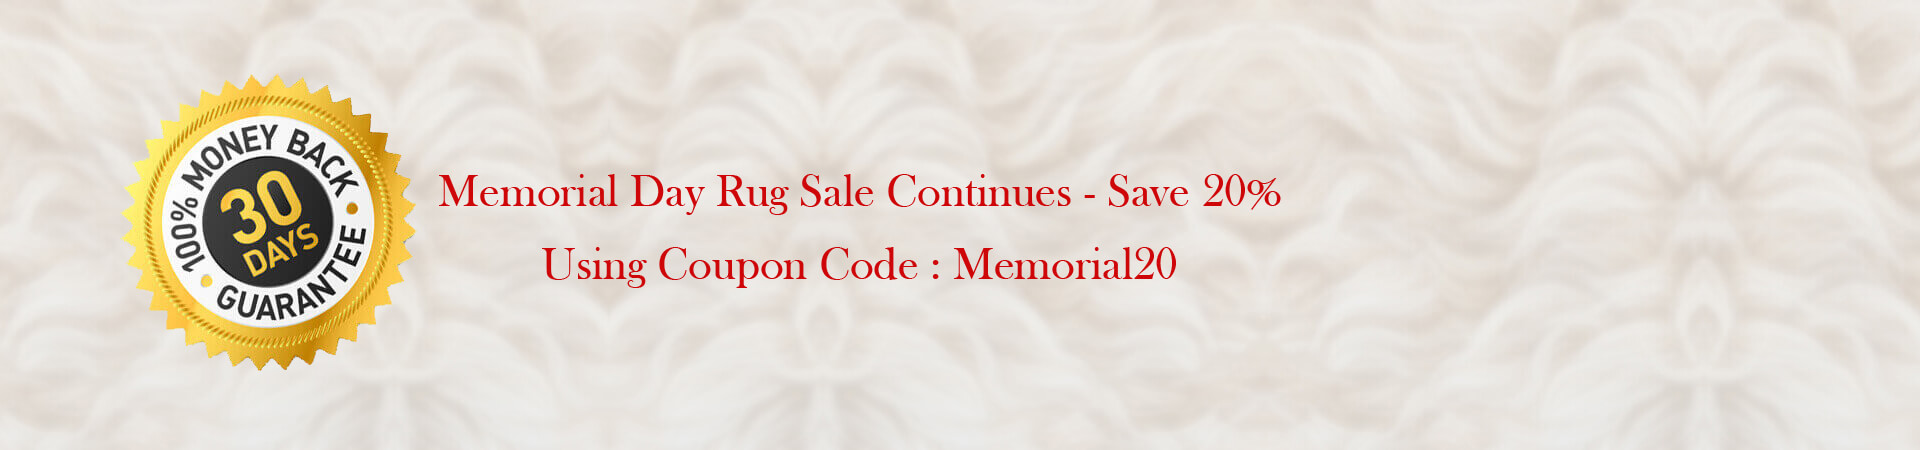 Memorial Day Rug Sale continues